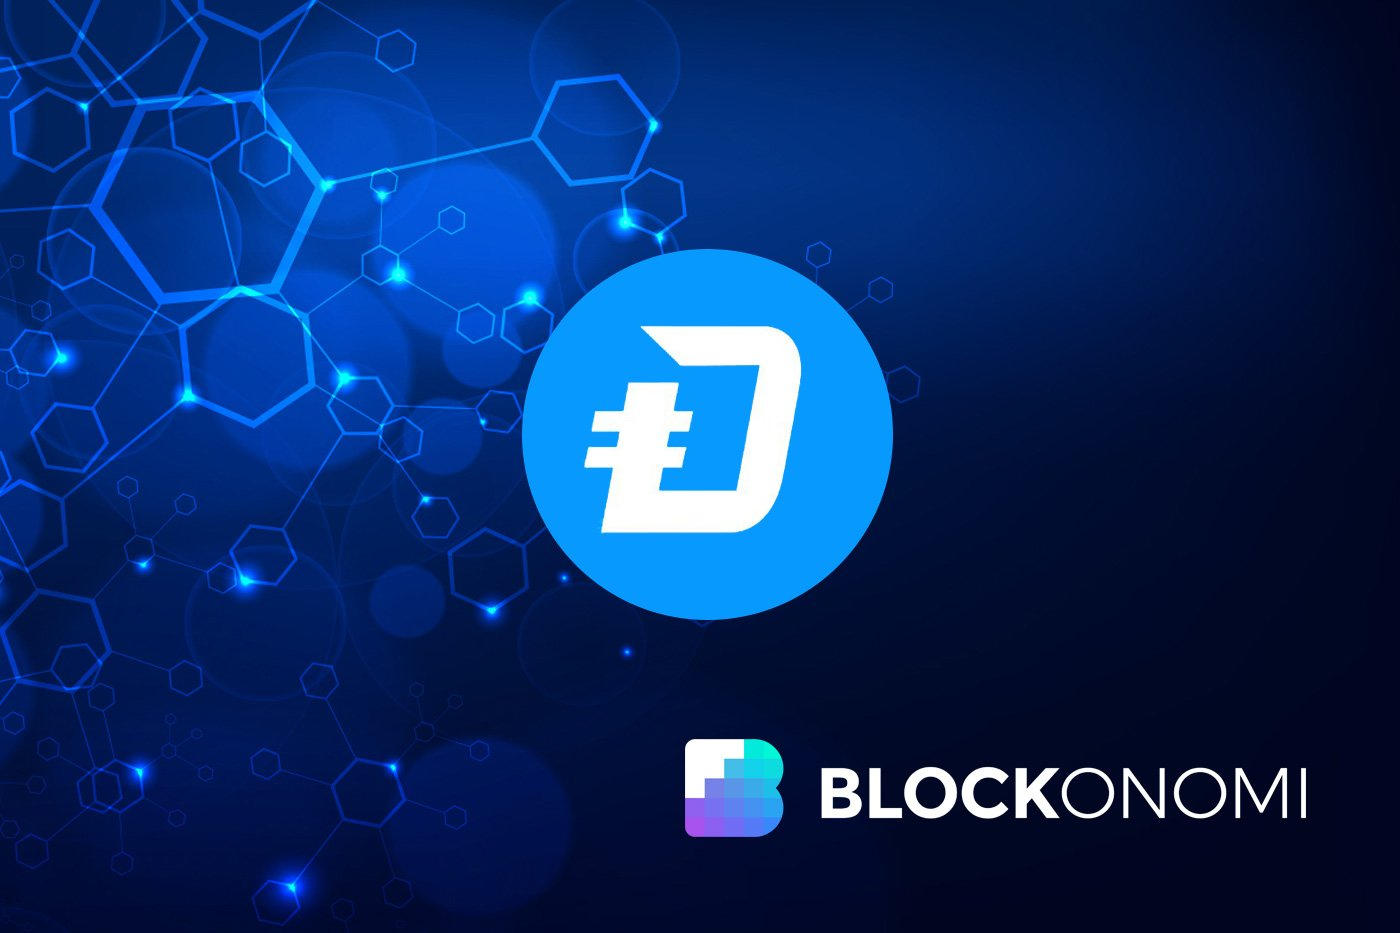 Dolla Also Wants To Become A Leader In Local And International Money Transfers The Project Will Utilize Its Superior Blockchain Exchange Atm Network